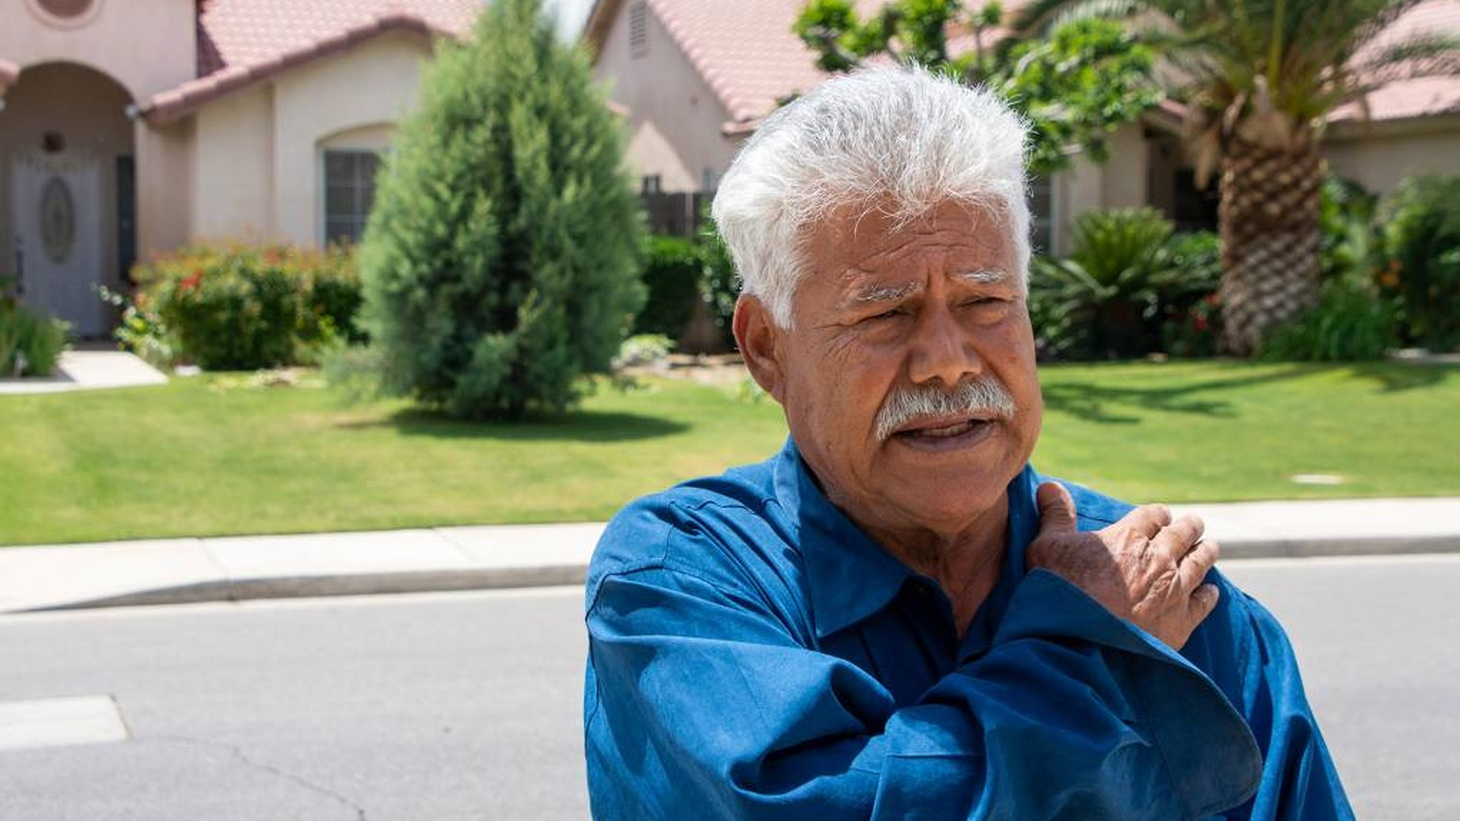 Arturo Gonzalez stands outside his home in Bakersfield, California. Gonzalez settled with the city of Bakersfield for injuries he received after officers struck him in January 2015.